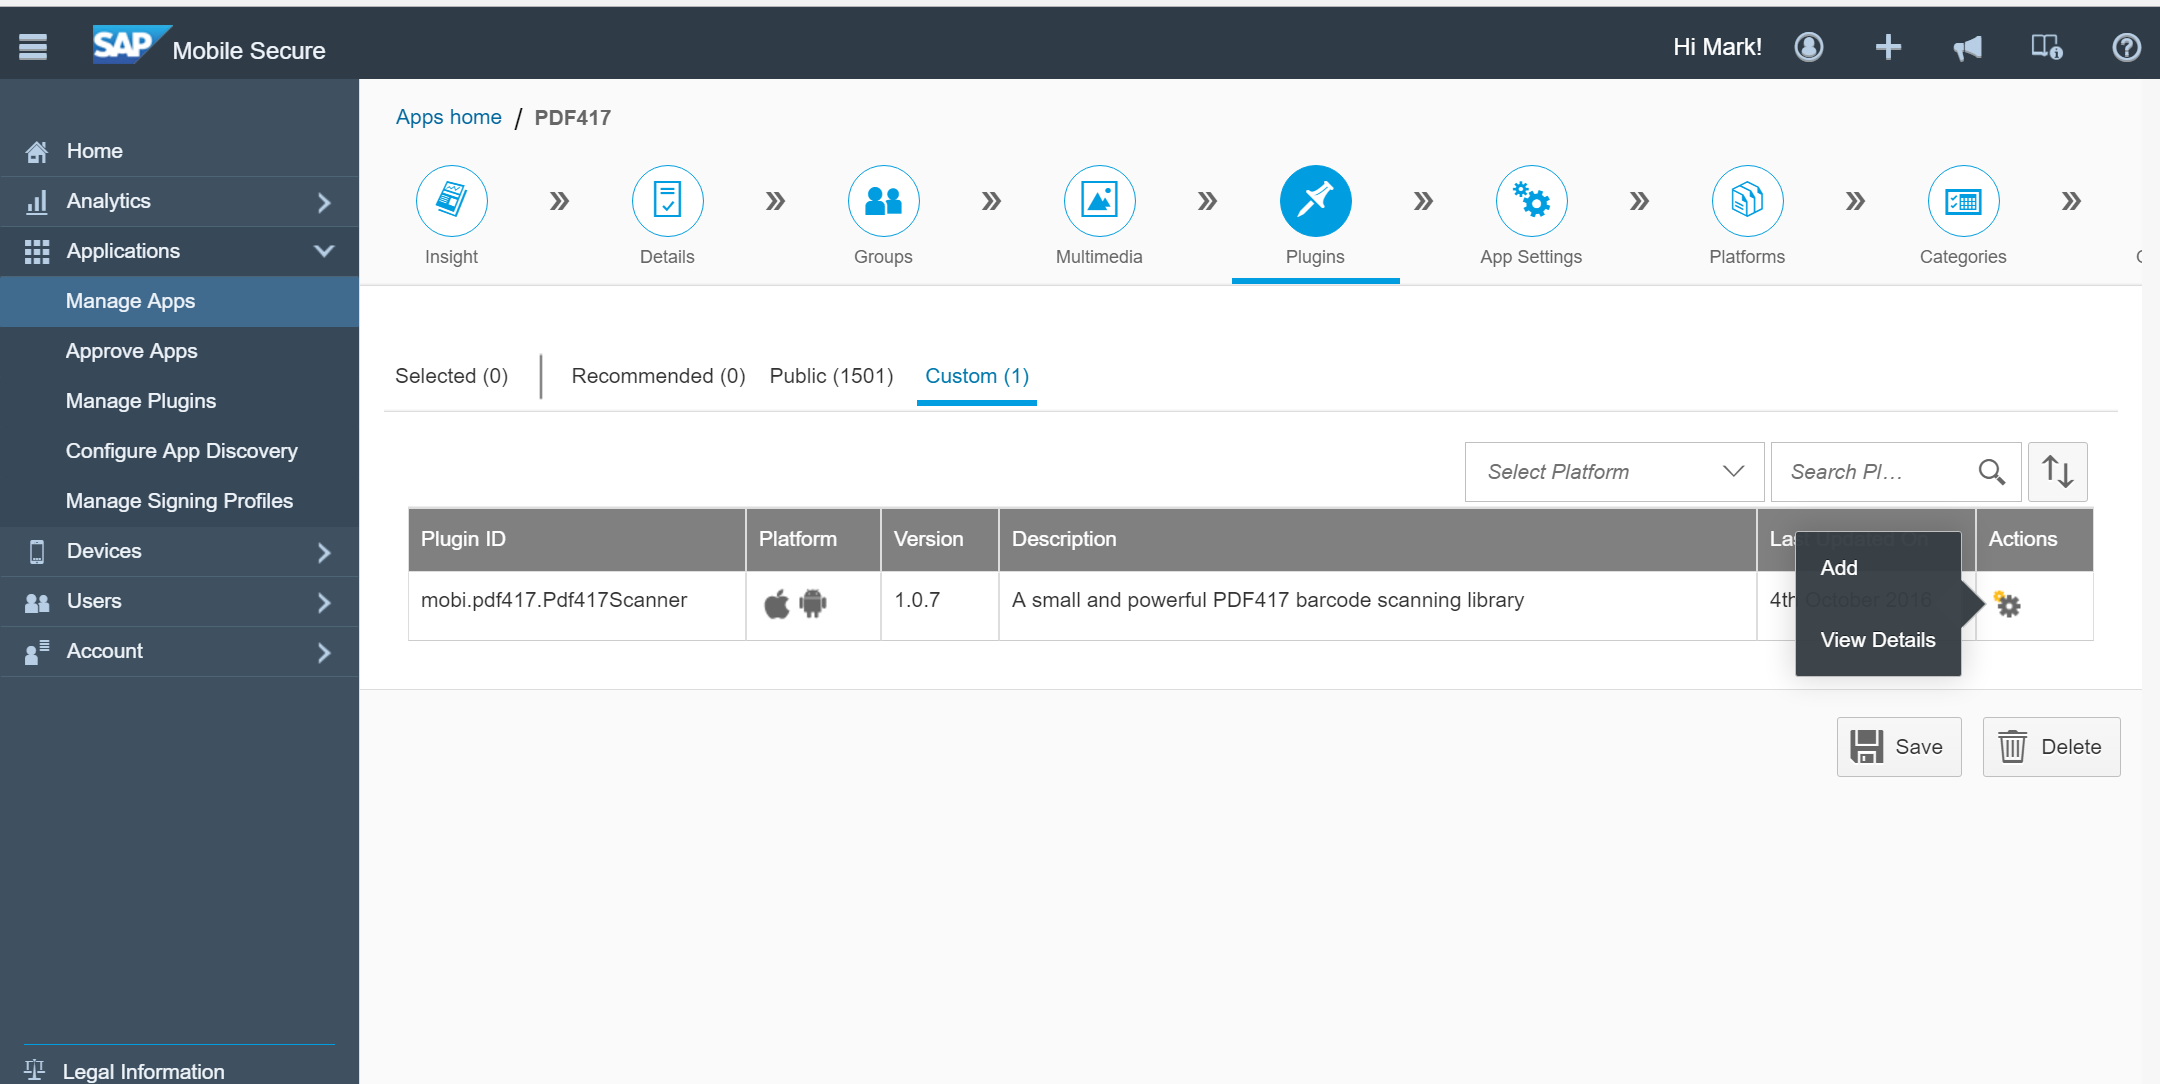 Add PDF417 Barcode Scanning to your Fiori Application using